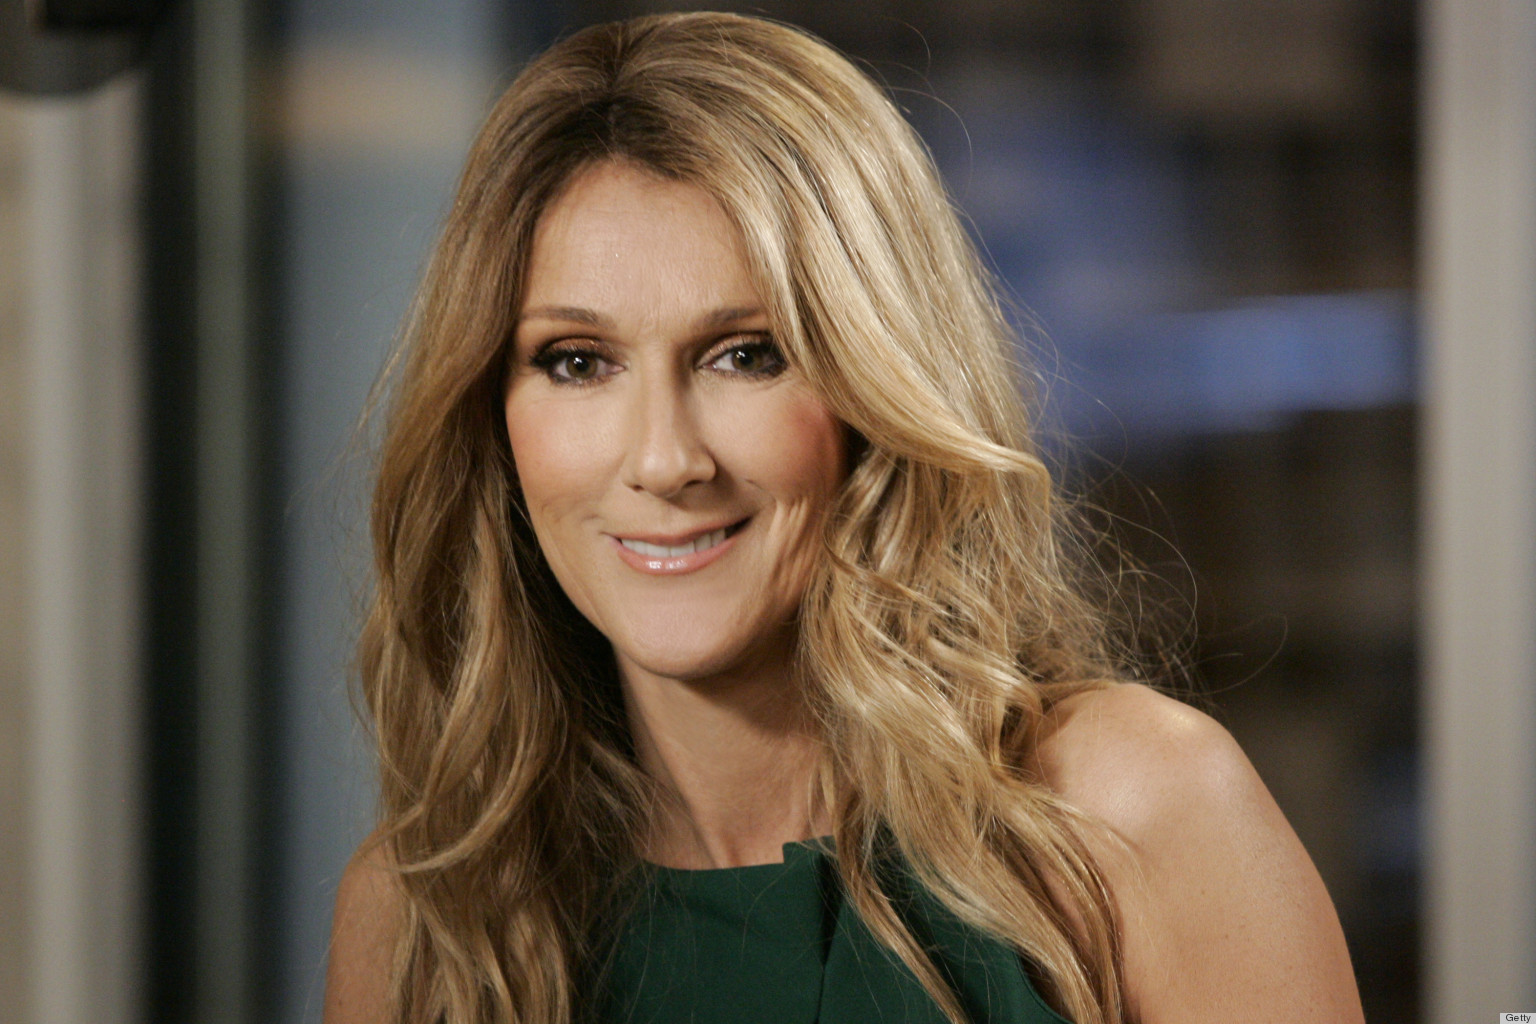 Where Does Celine Store Her 3000 Pairs Of Shoes?